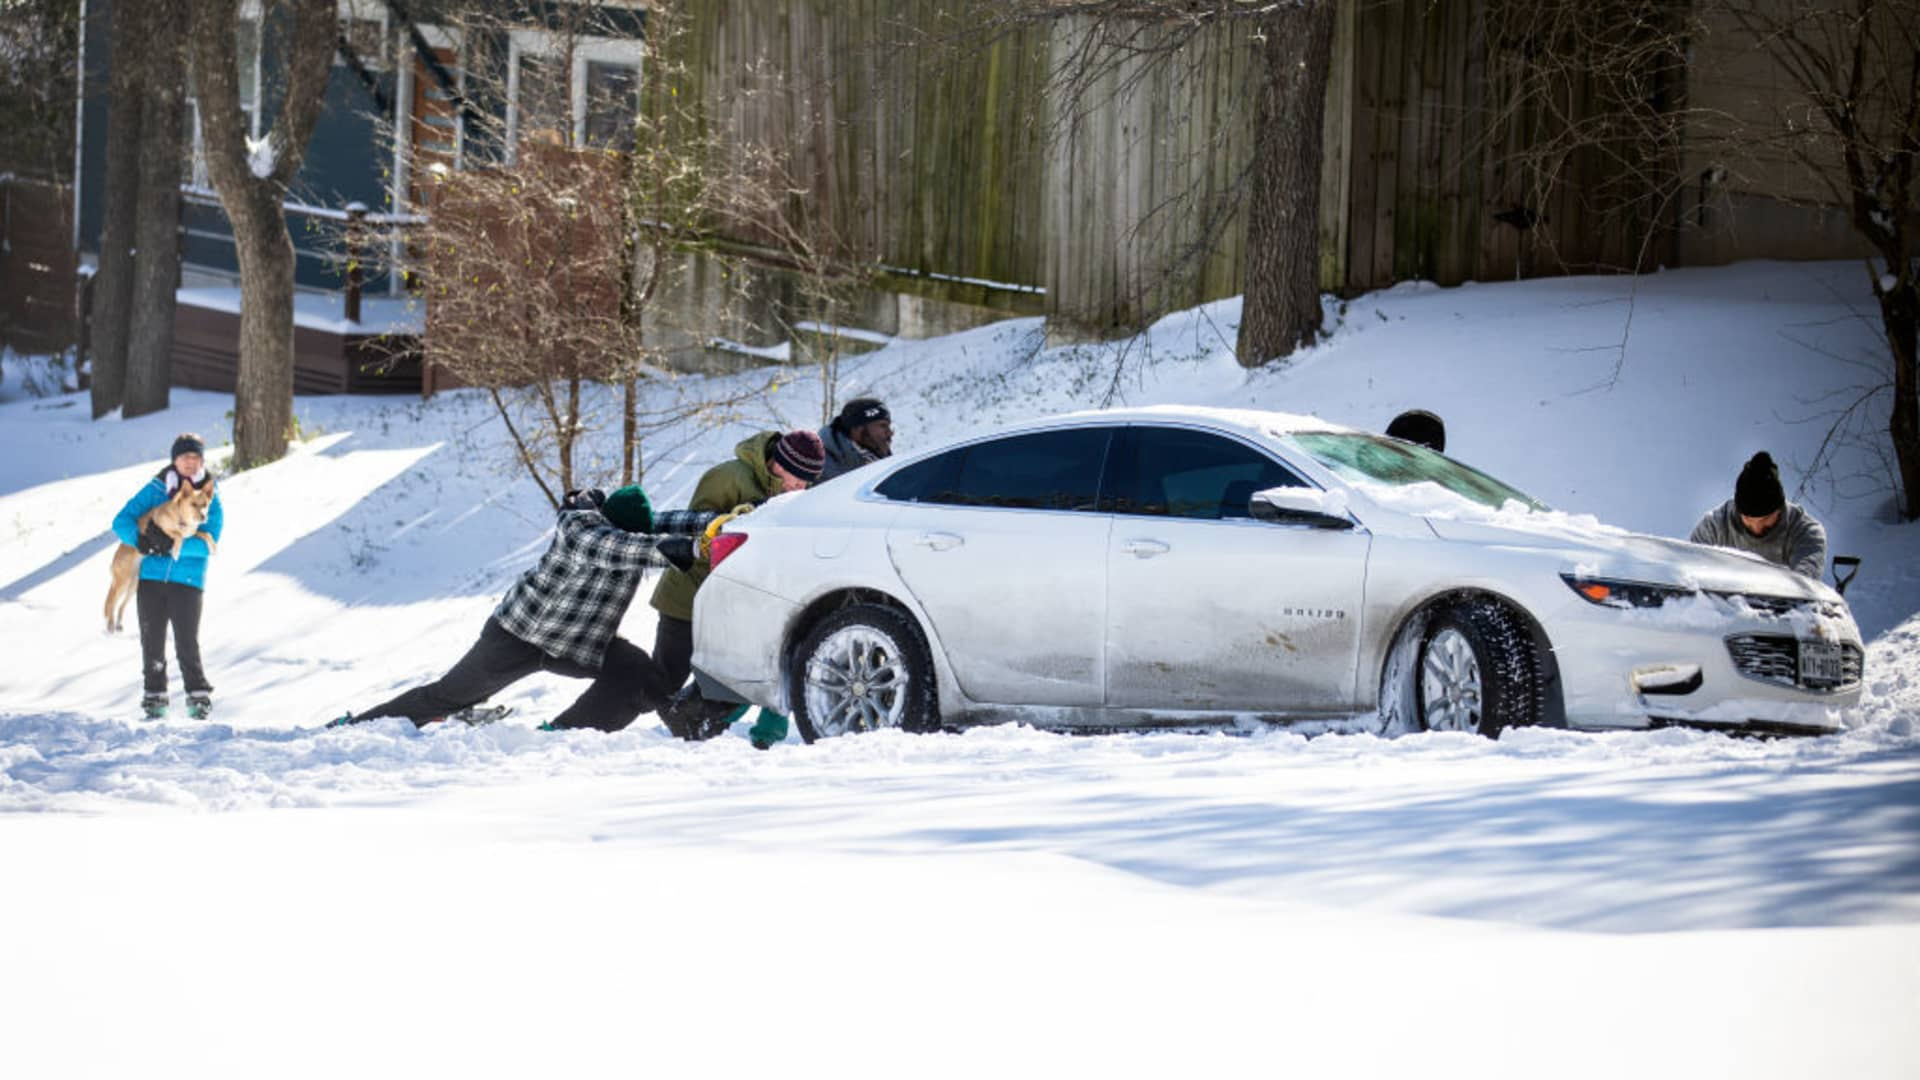 East Austin residents push a car out of the snow on February 15, 2021 in Austin, Texas.